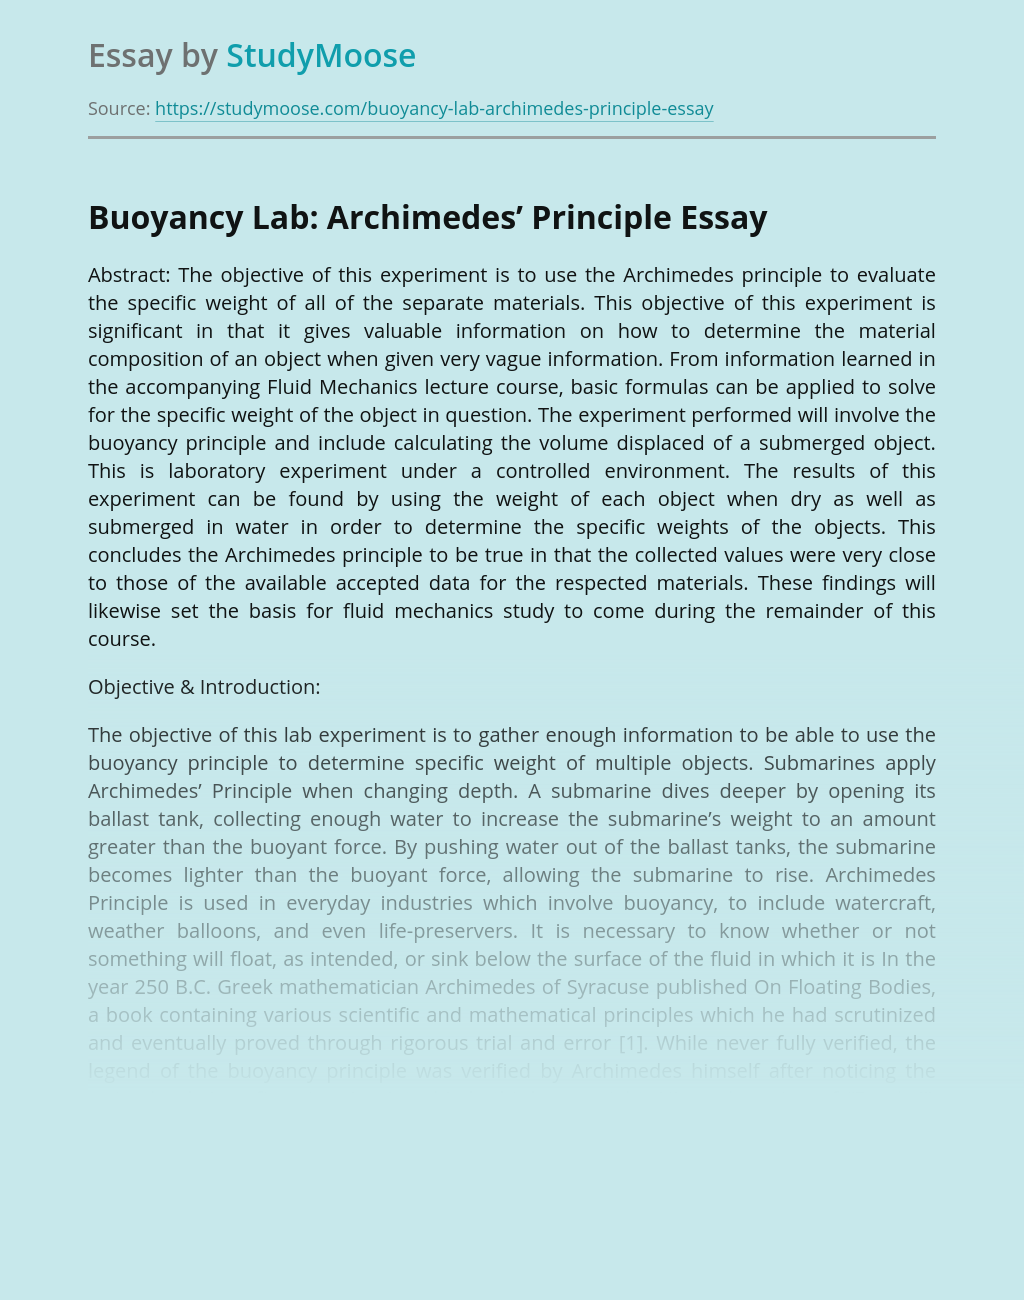 Buoyancy Lab: Archimedes' Principle